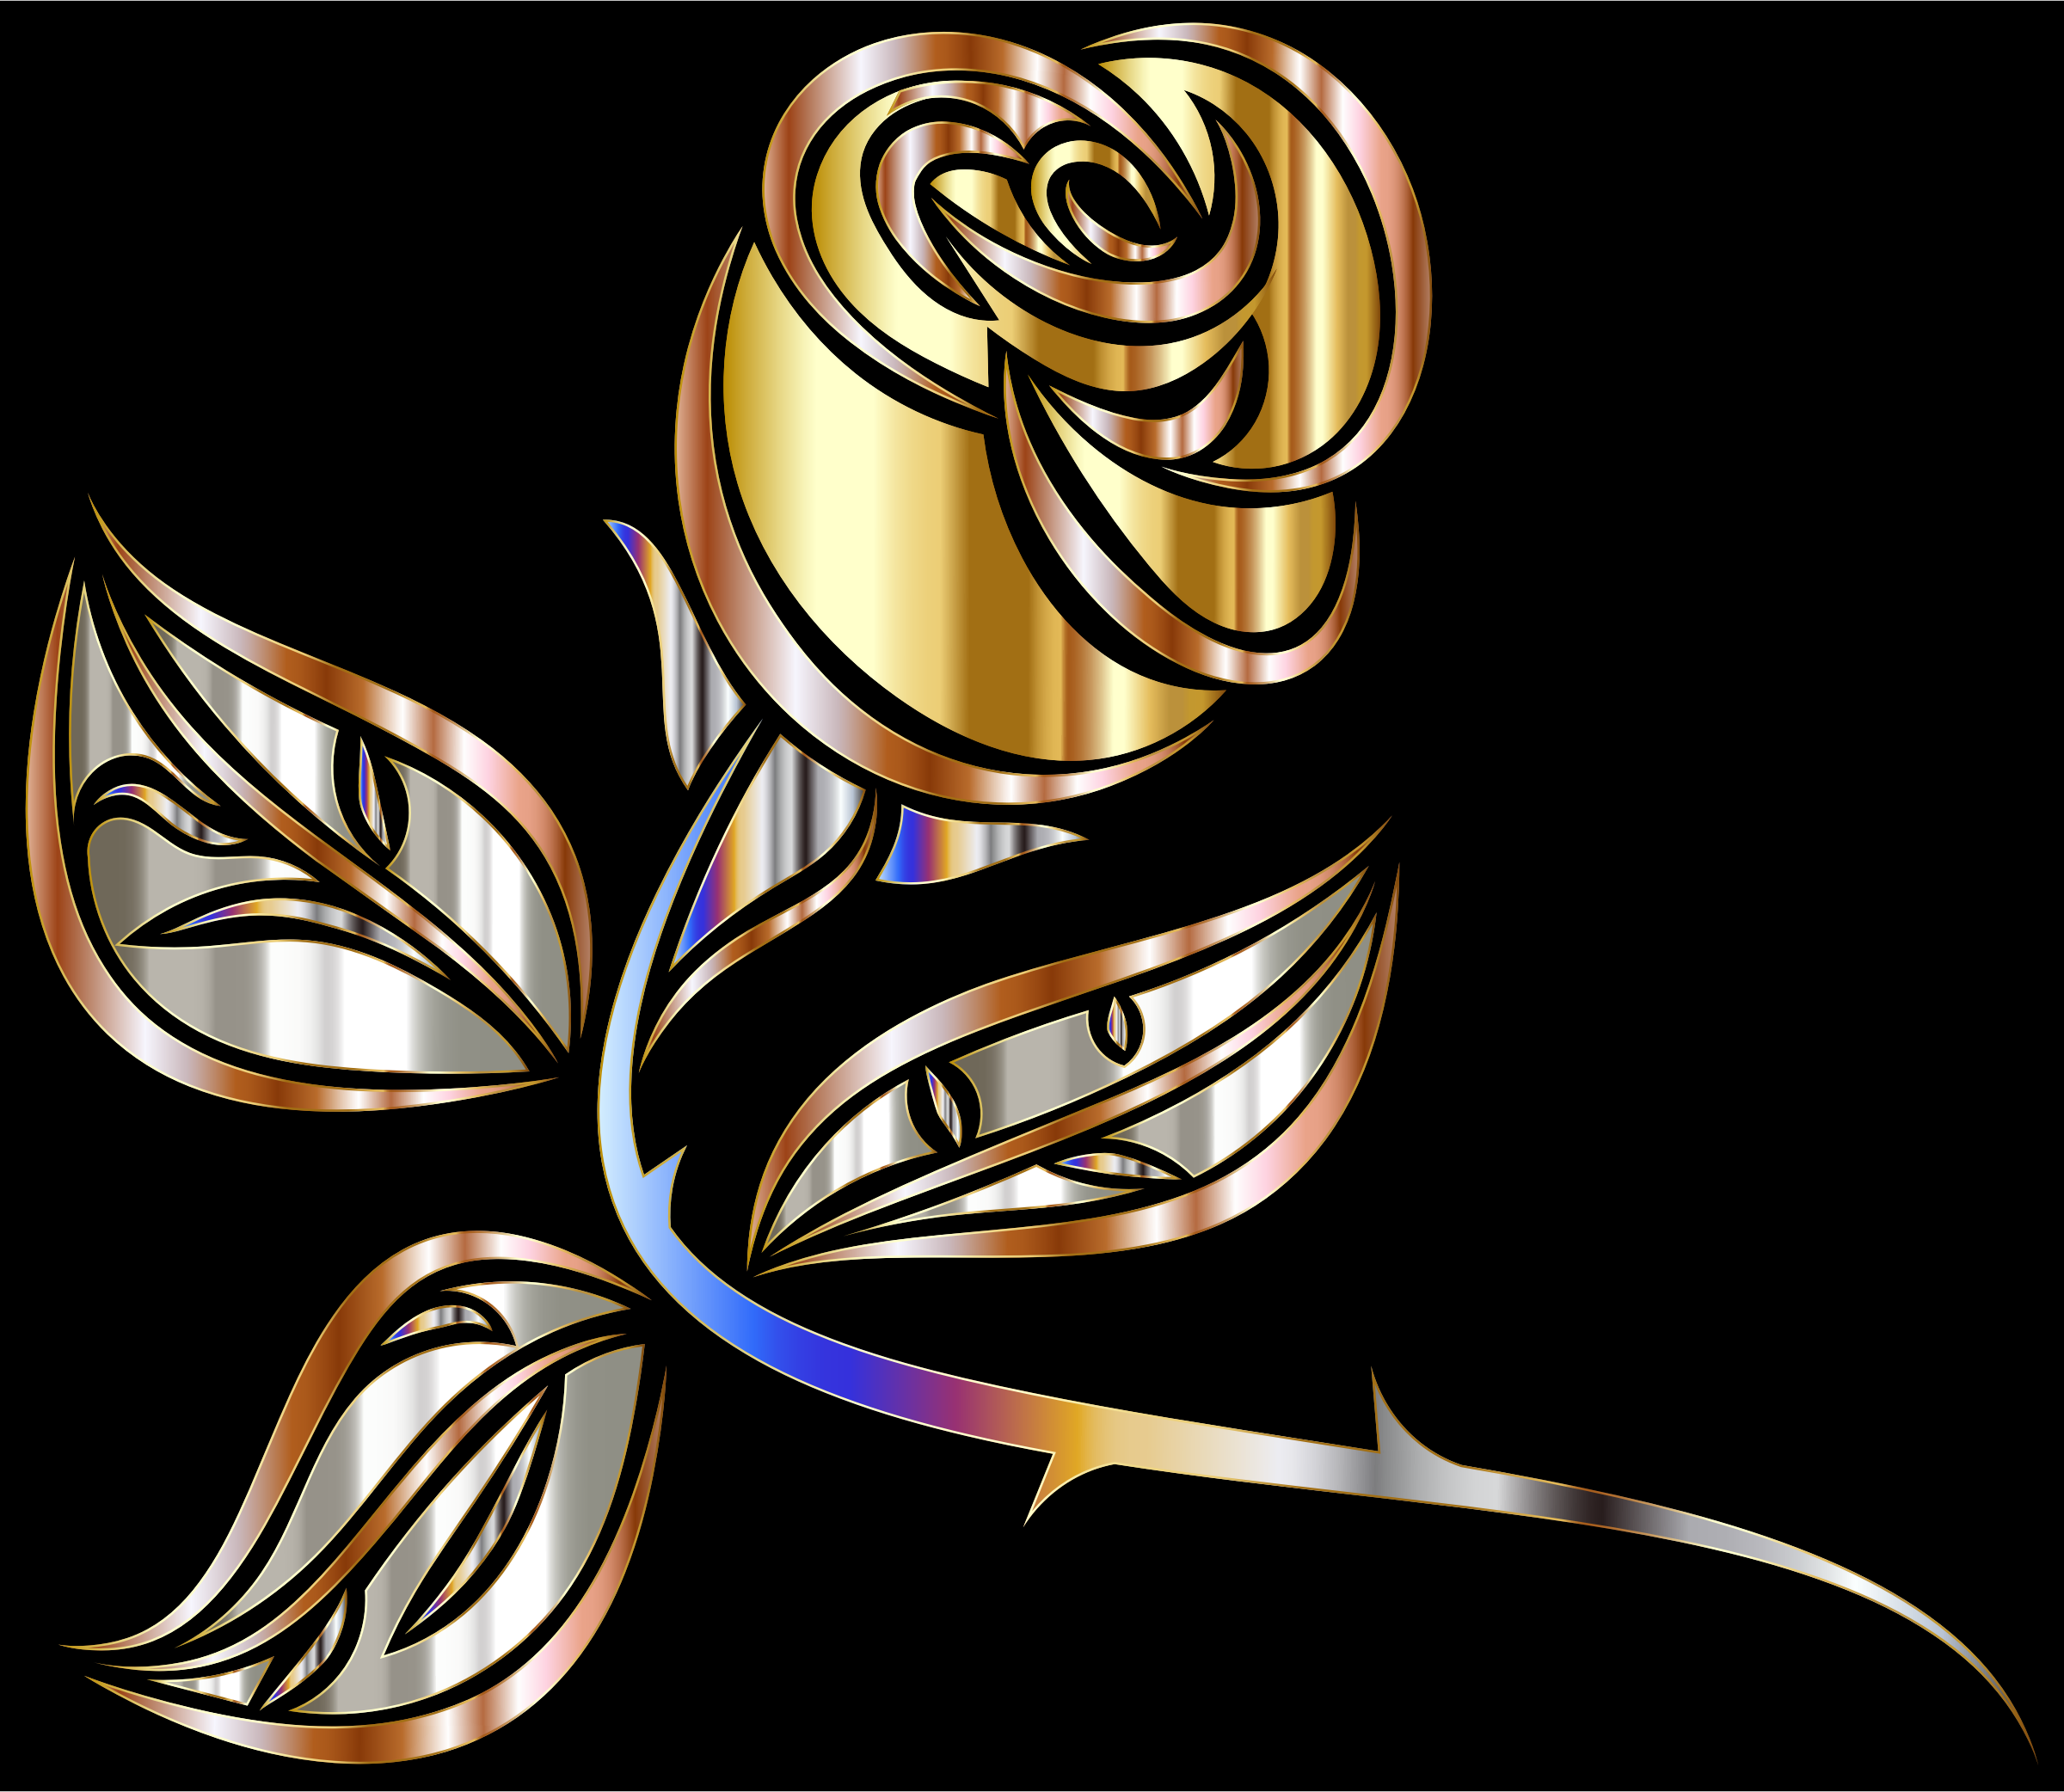 Stylized Rose Extended 2 by GDJ